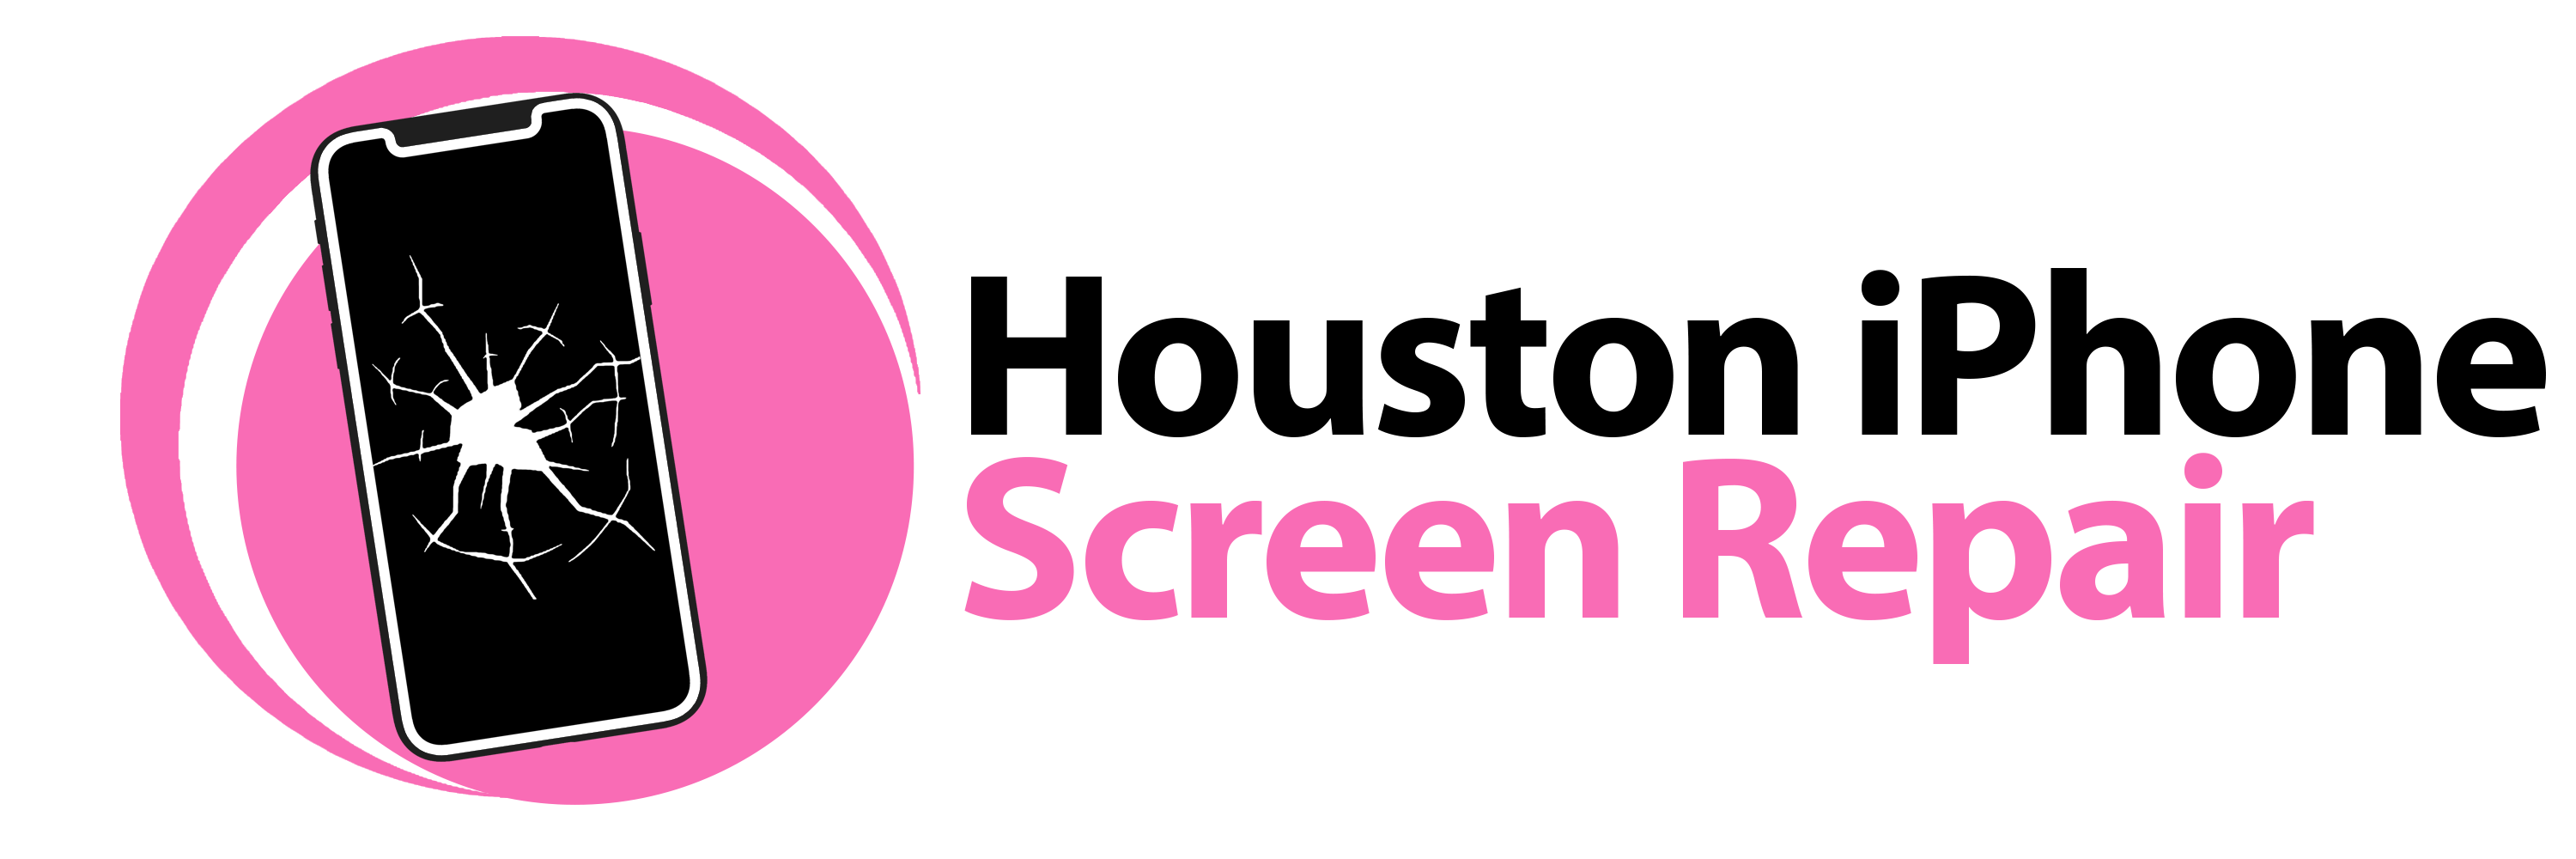 hisr logo real file pink